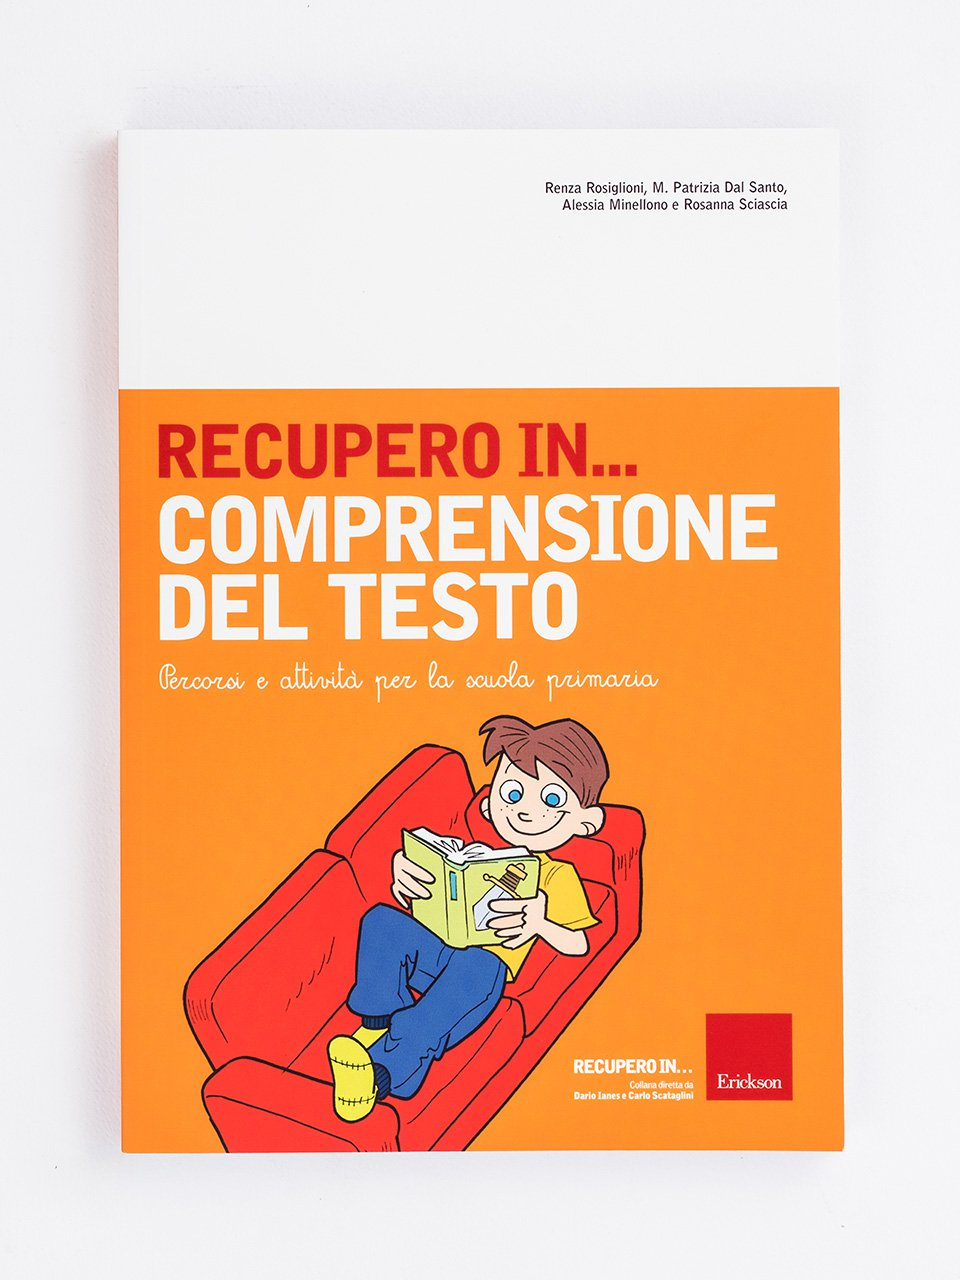 RECUPERO IN... Comprensione del testo - Strategie di lettura metacognitiva - Libri - Erickson